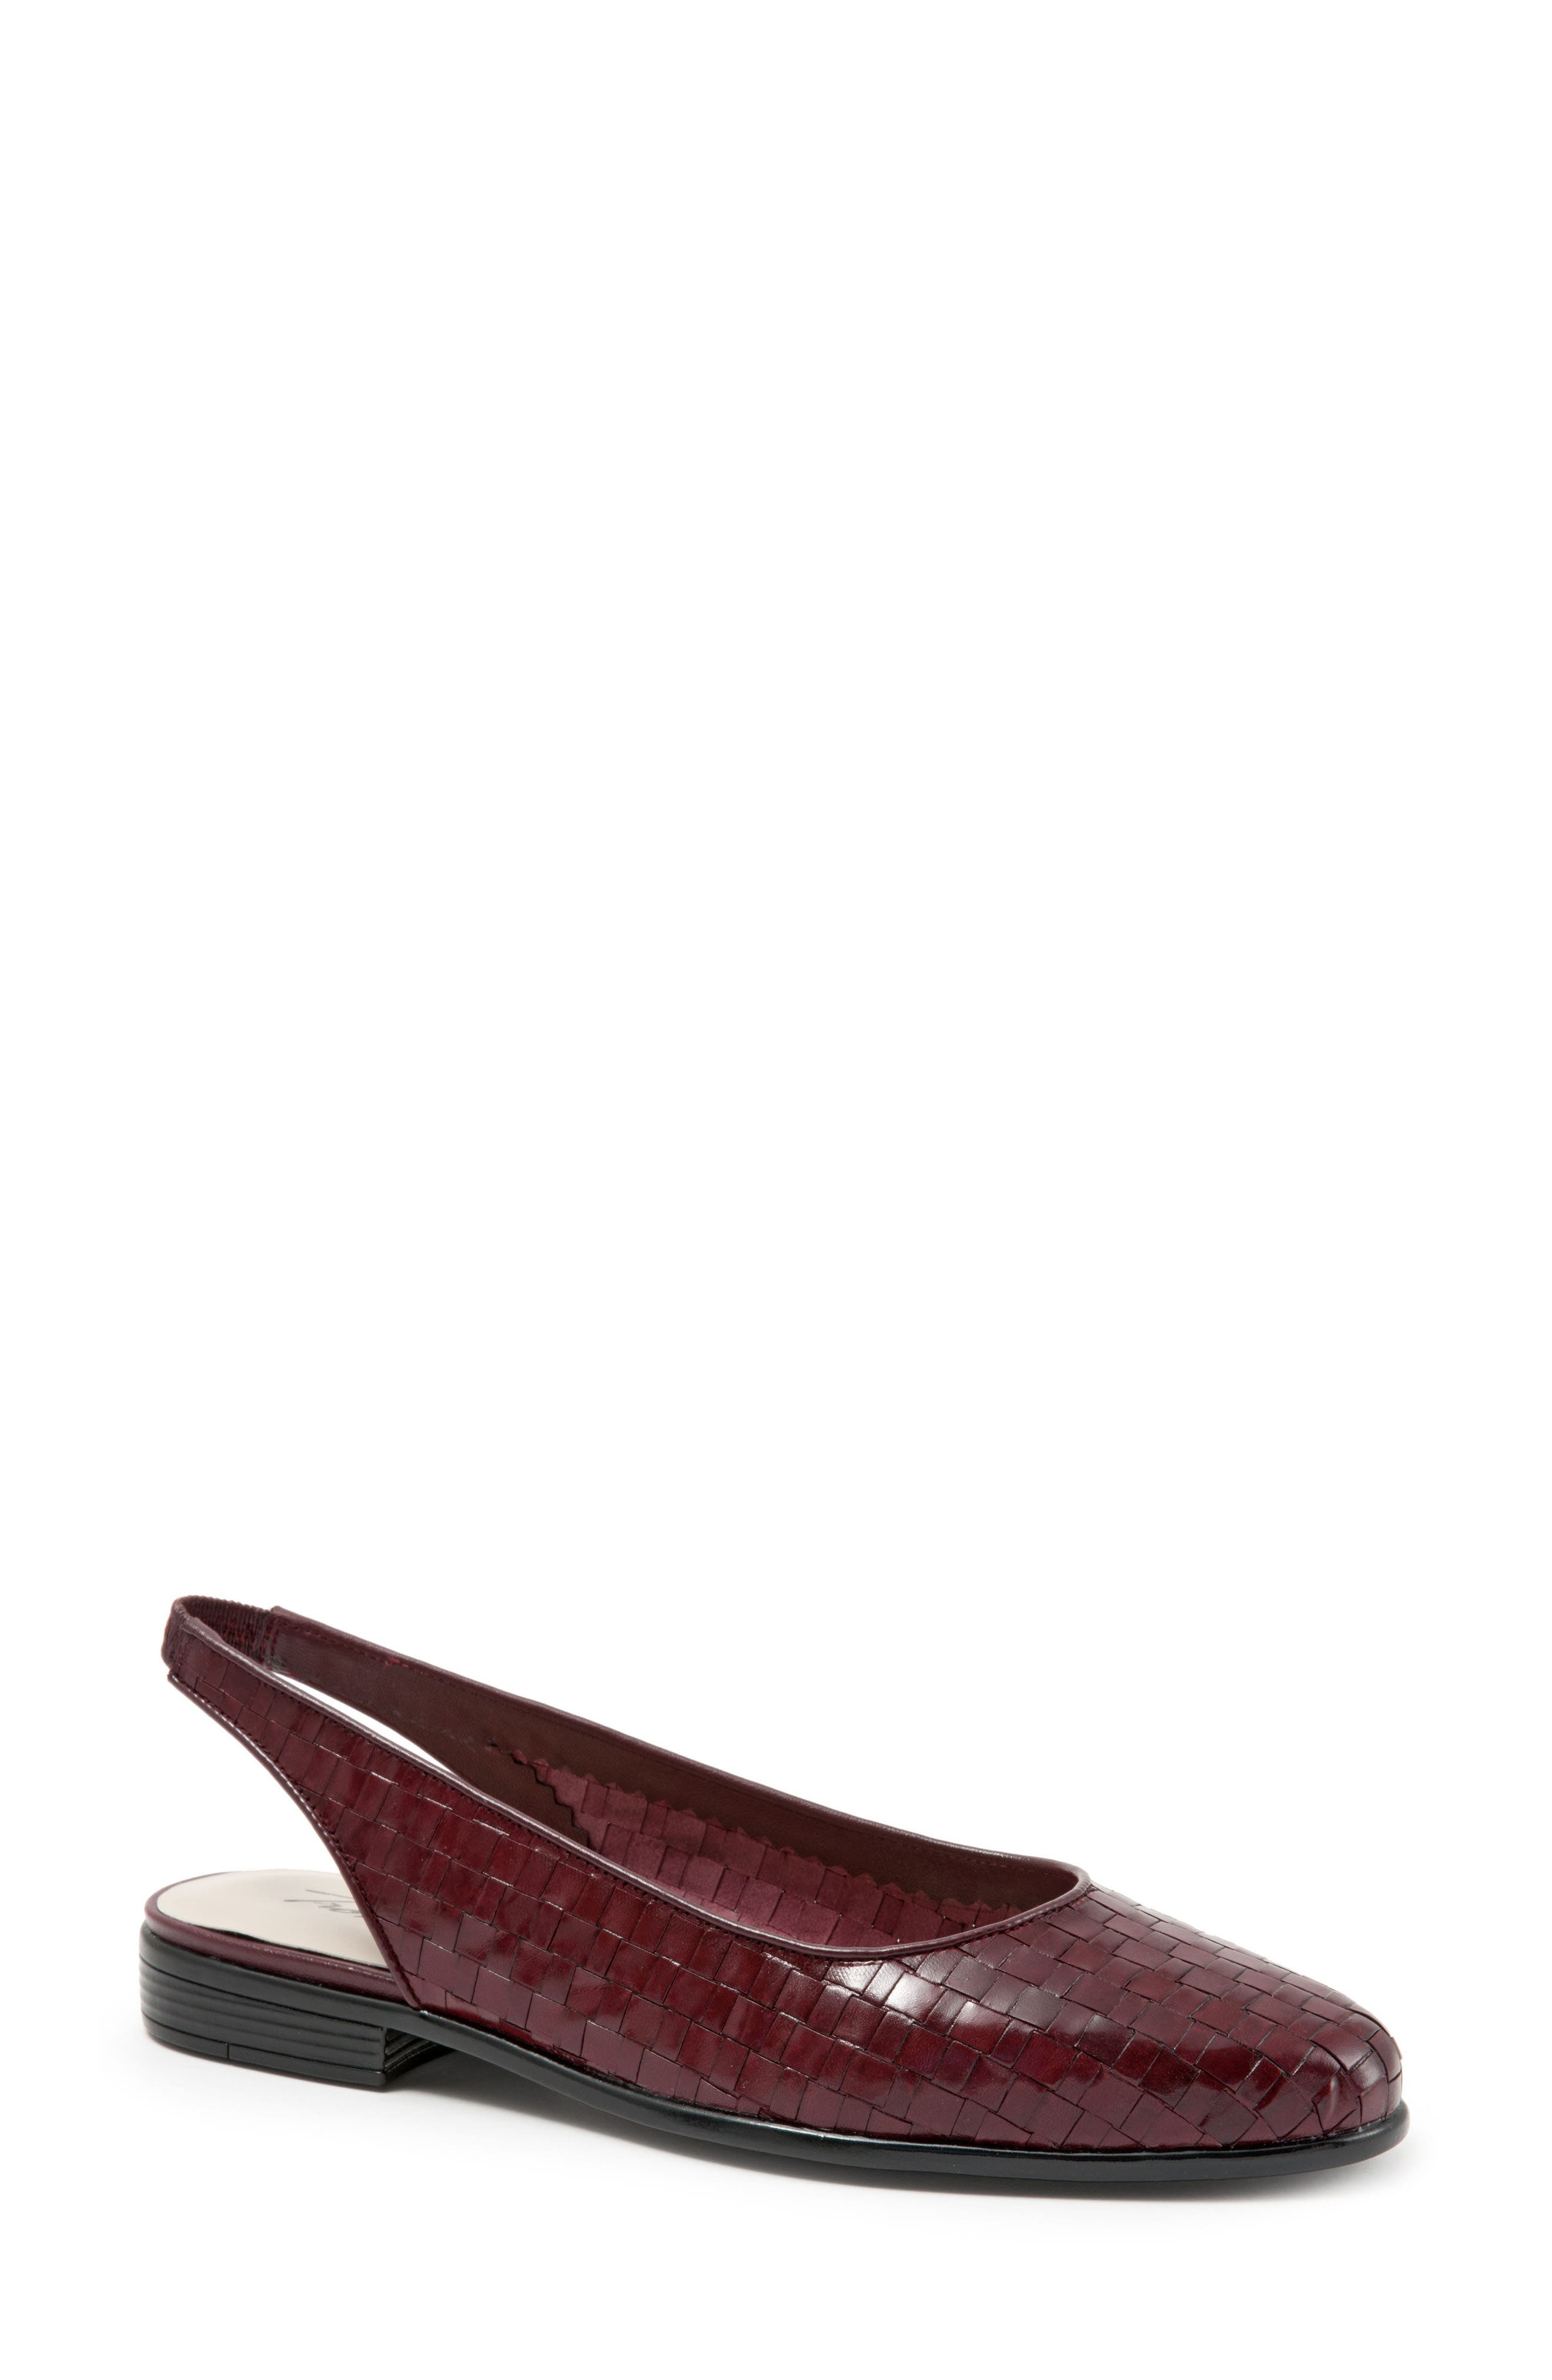 Alternate Image 1 Selected - Trotters Lucy Slingback Flat (Women)